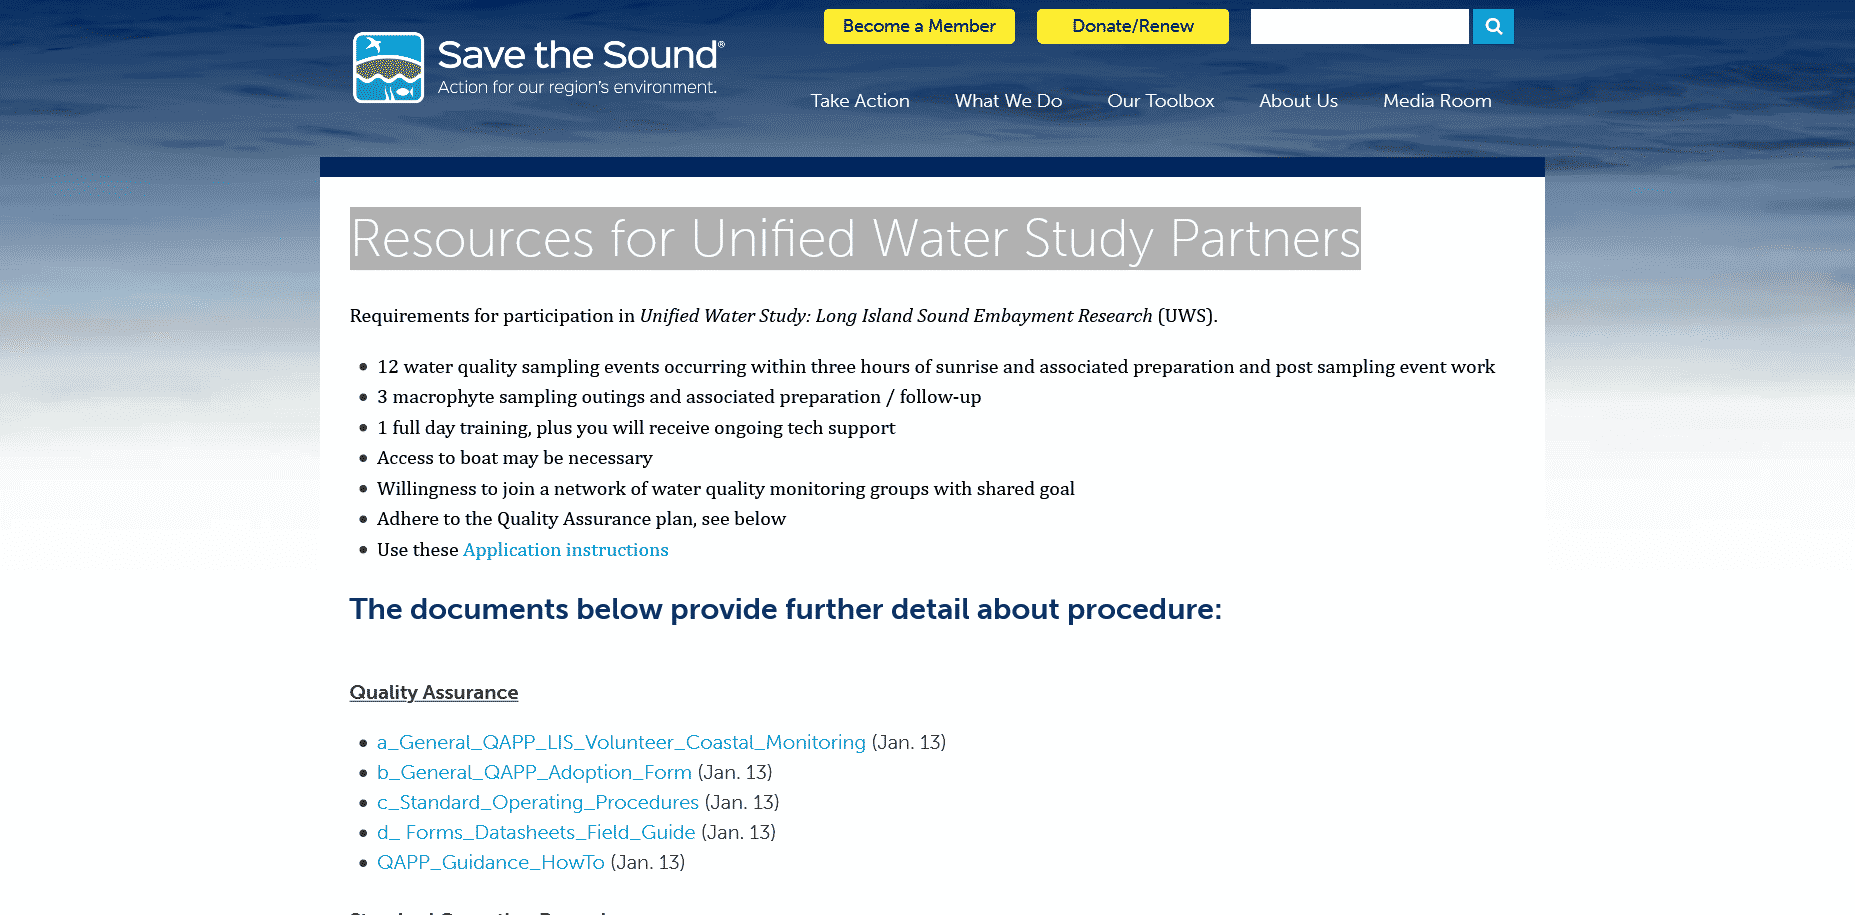 Resources for Unified Water Study Partners